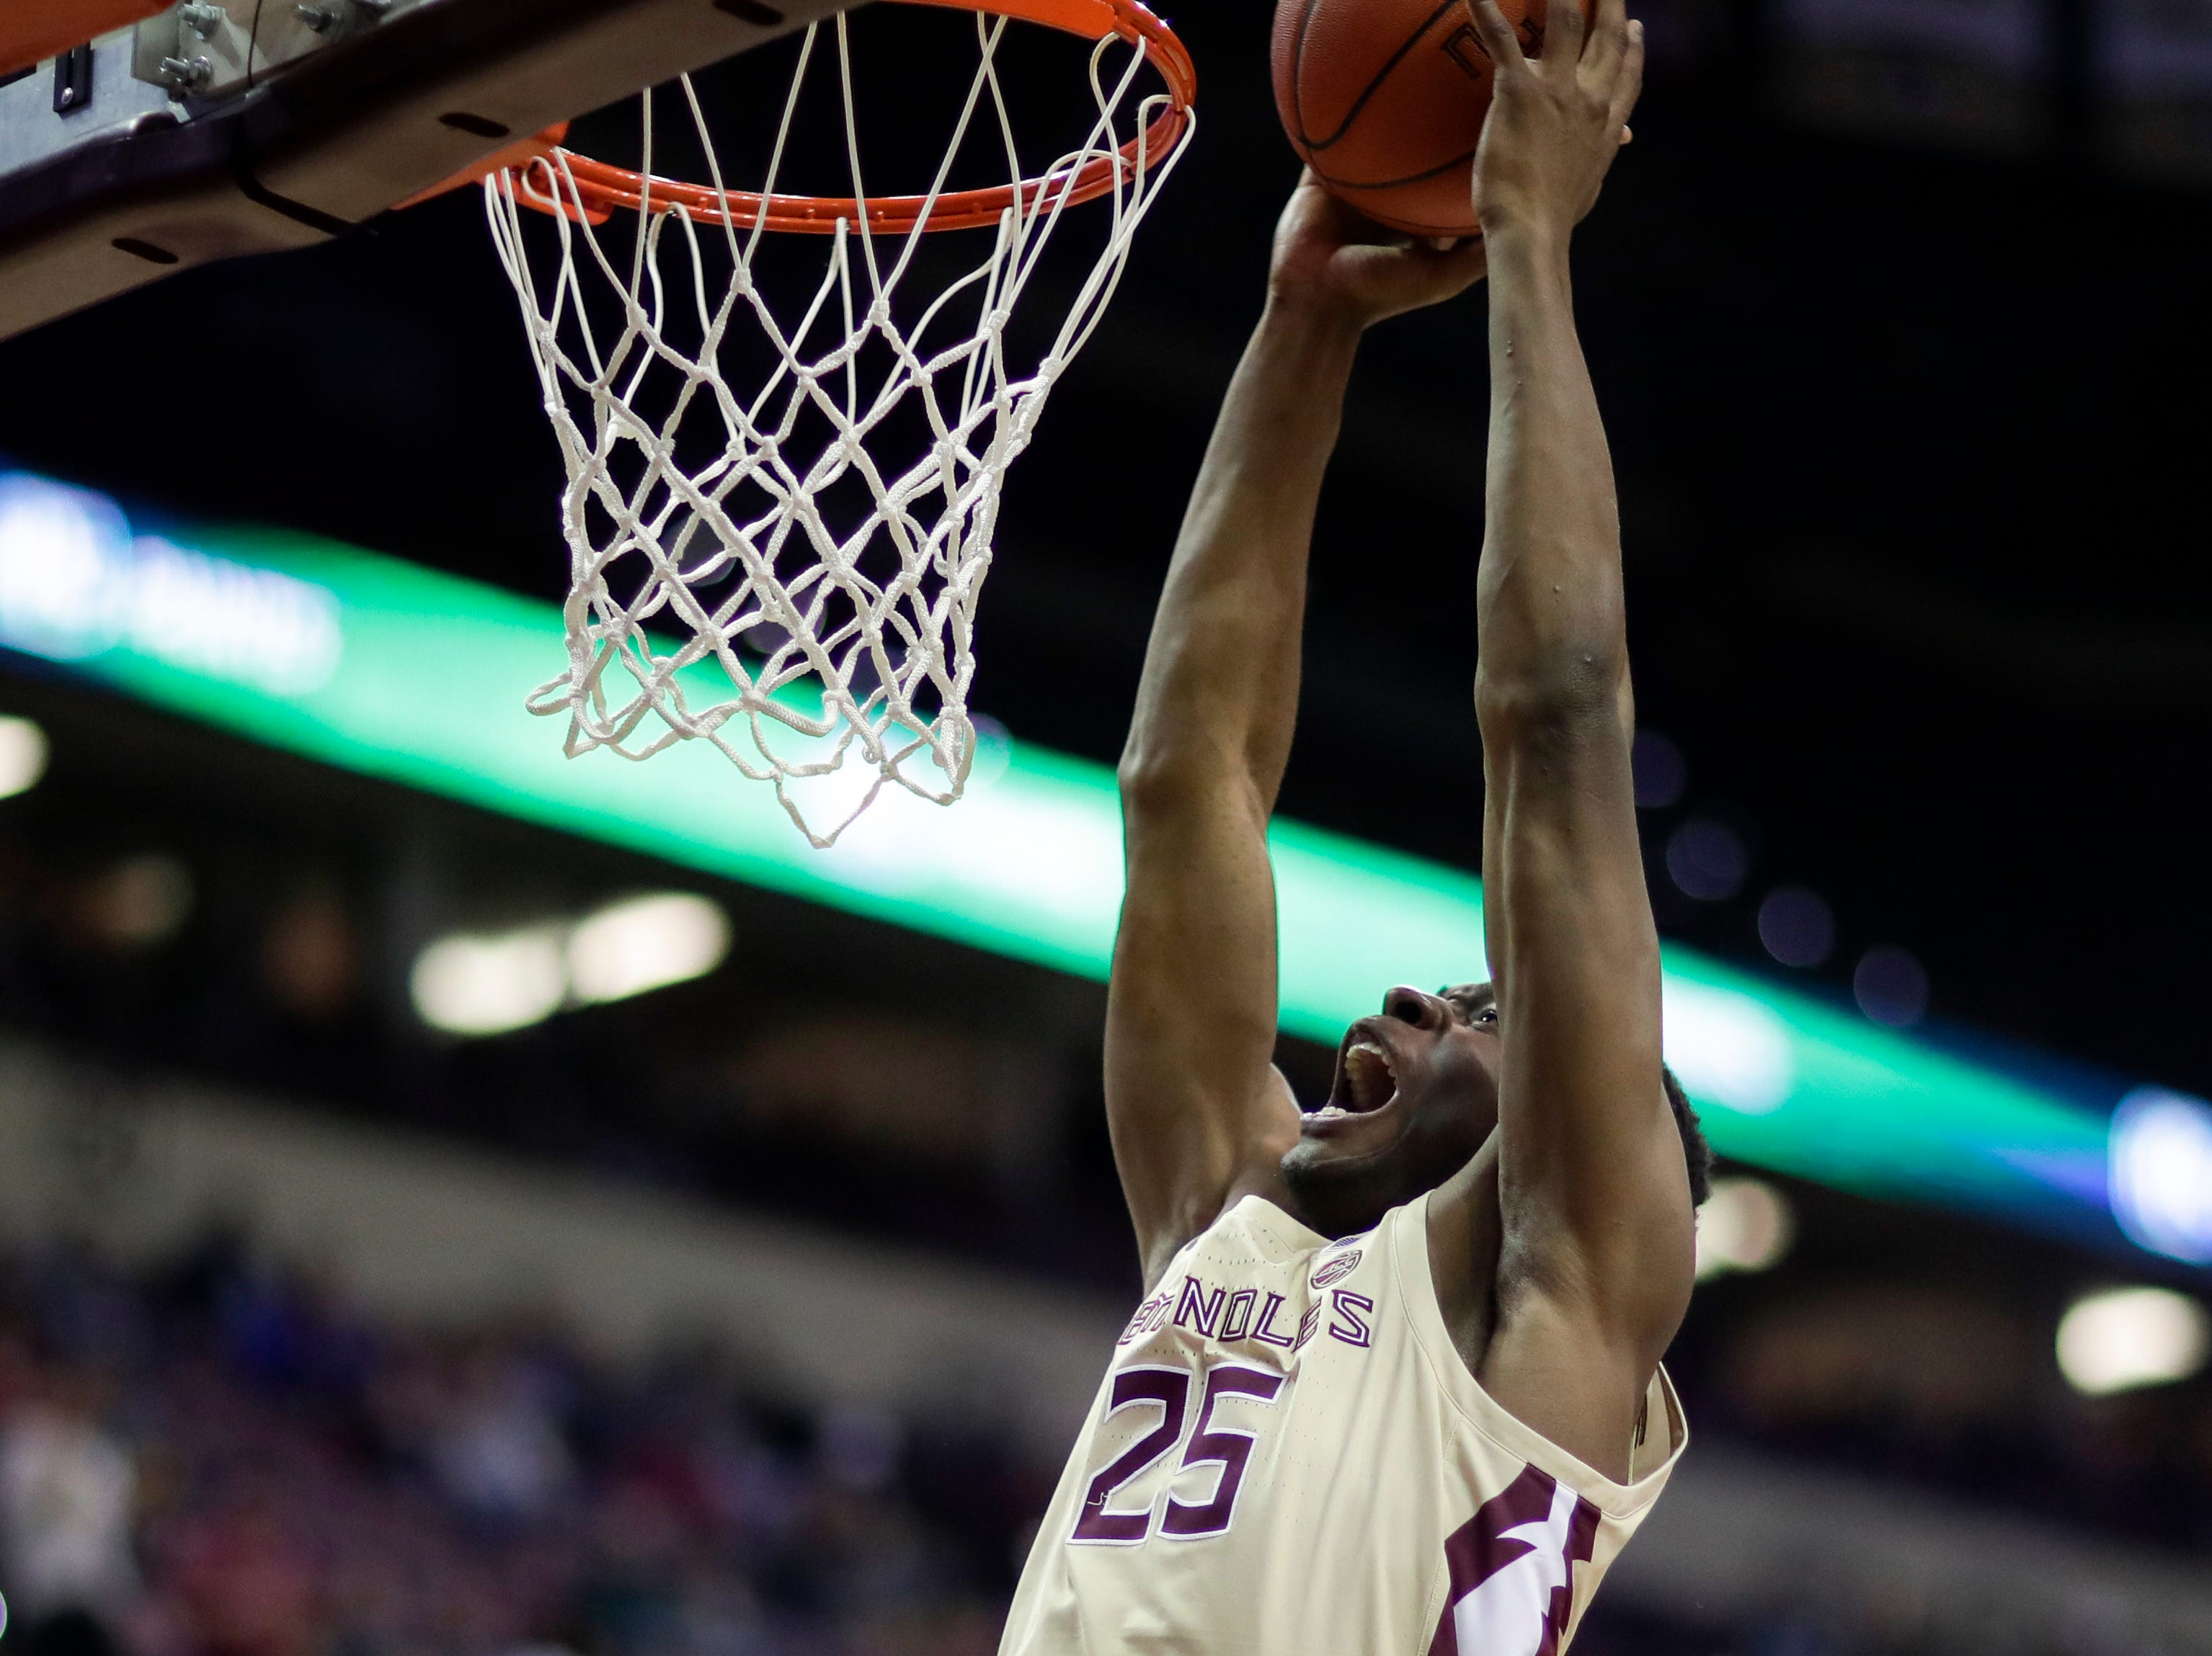 Florida State Seminoles forward Mfiondu Kabengele (25) puts up a dunk during a game between FSU and Wake Forest at the Donald L. Tucker Civic Center Wednesday, Feb. 13, 2019.